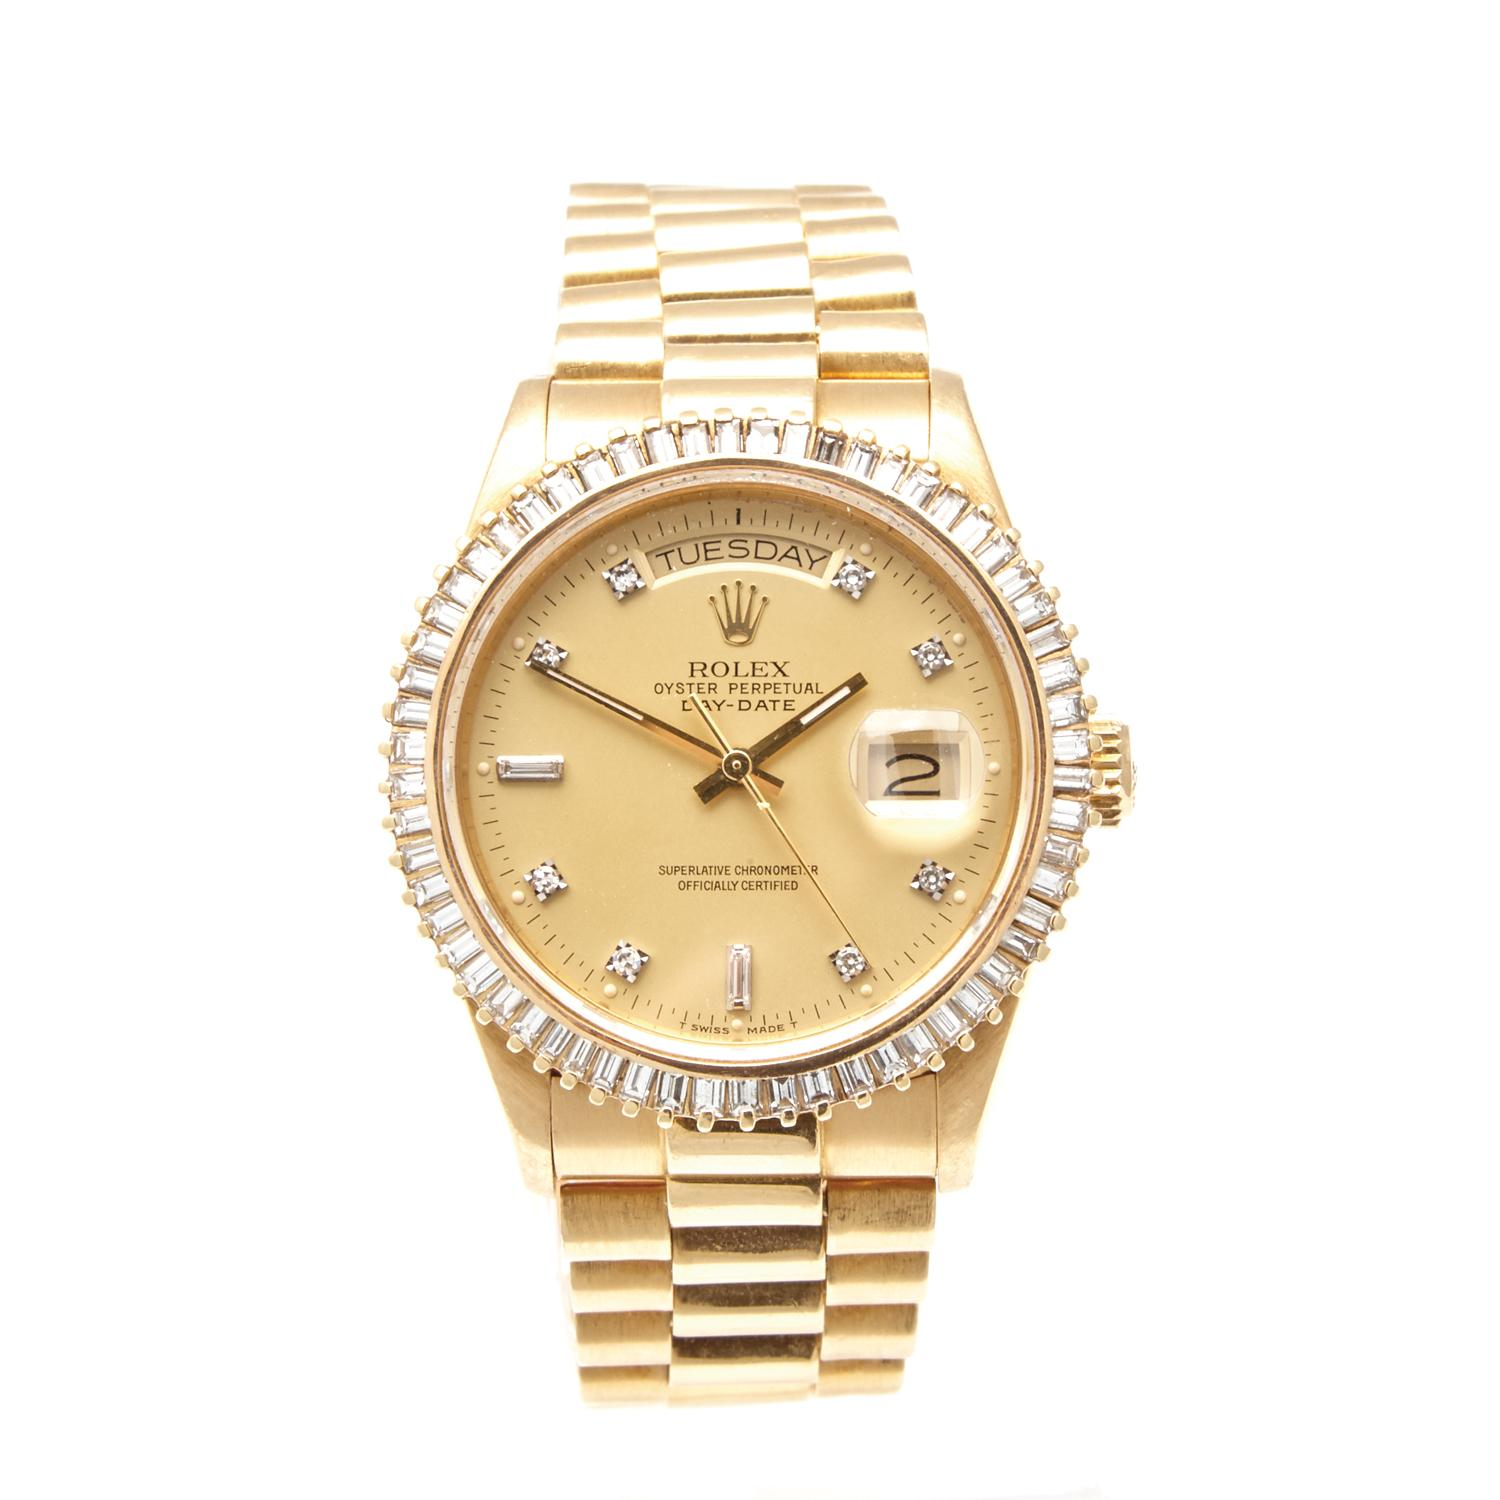 ea8e7c86a70 Lot 614 of 170: A Gold and Diamond Rolex Oyster Perpetual Day-Date  Wristwatch